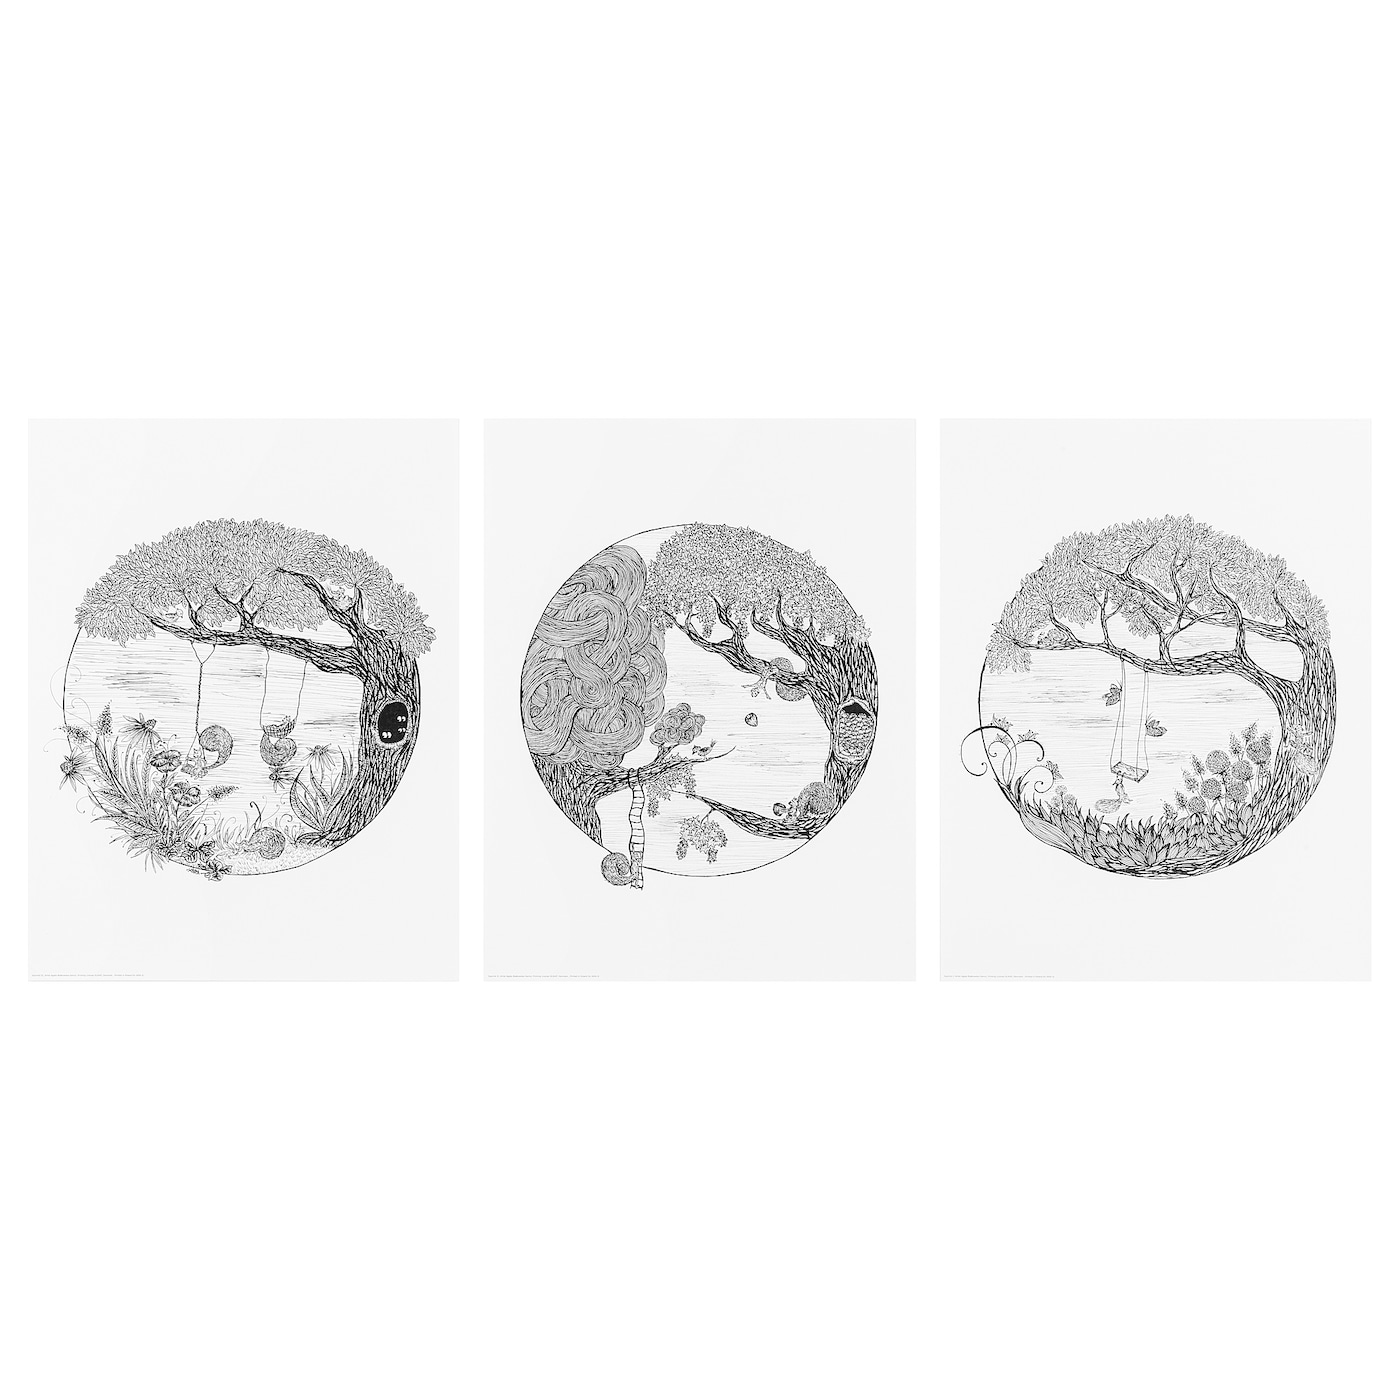 IKEA HUNGE poster, set of 3 You can personalise your home with artwork that expresses your style.